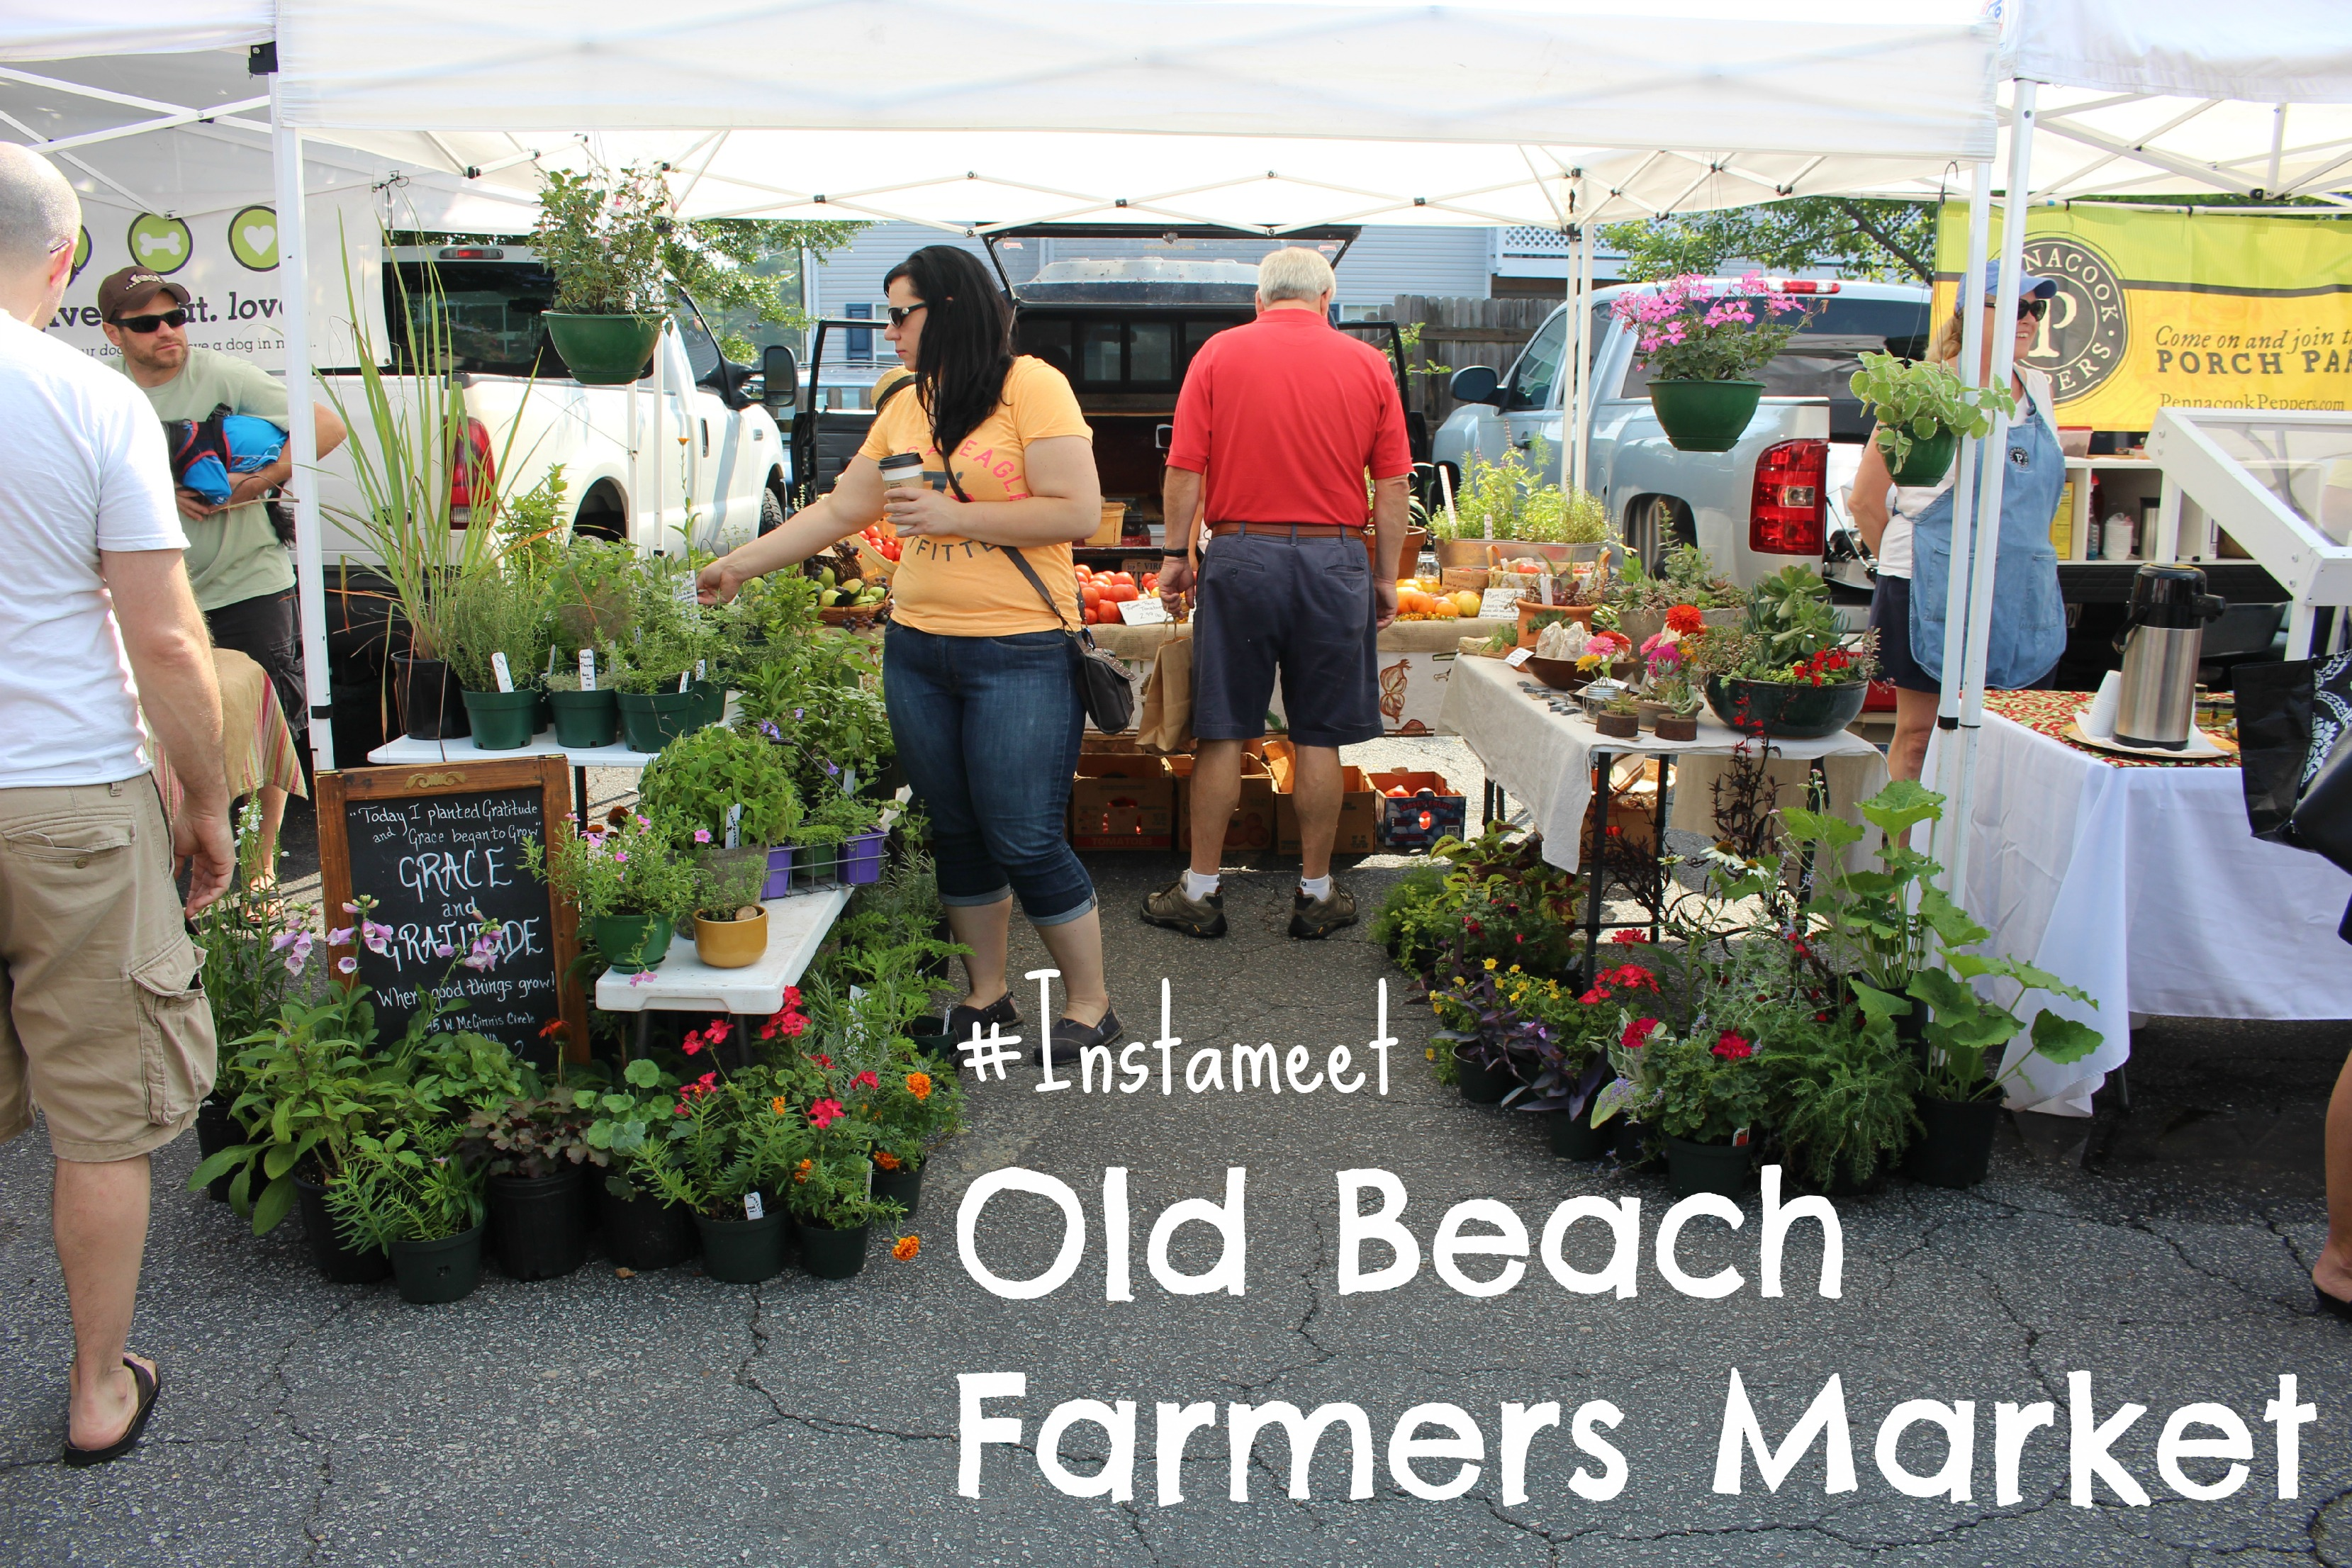 #Instameet at Old Beach Farmers Market